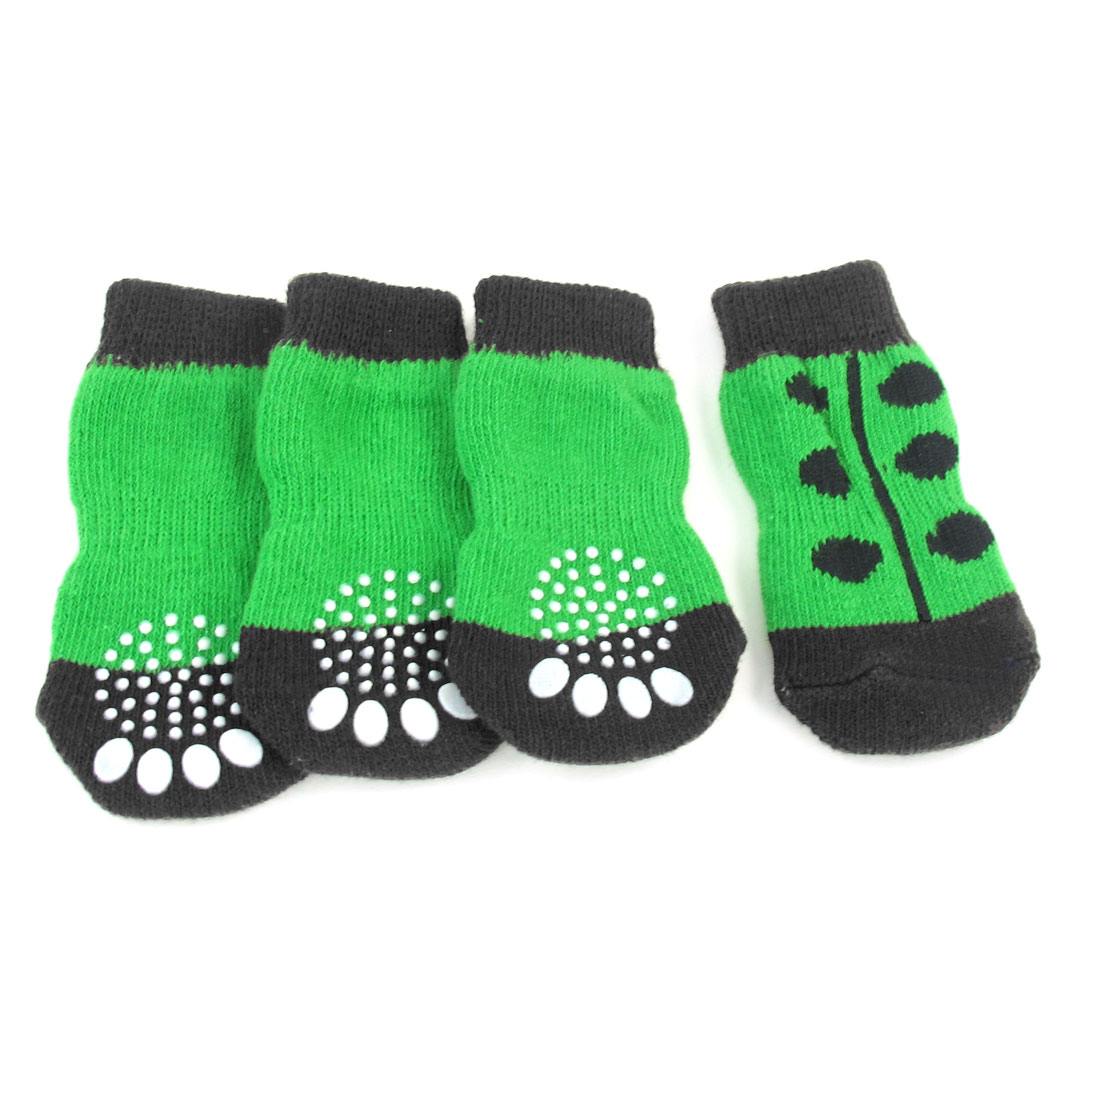 4 Pcs Size L White Paw Pattern Nonslip Bottom Elastic Knit Pet Dog Socks Green